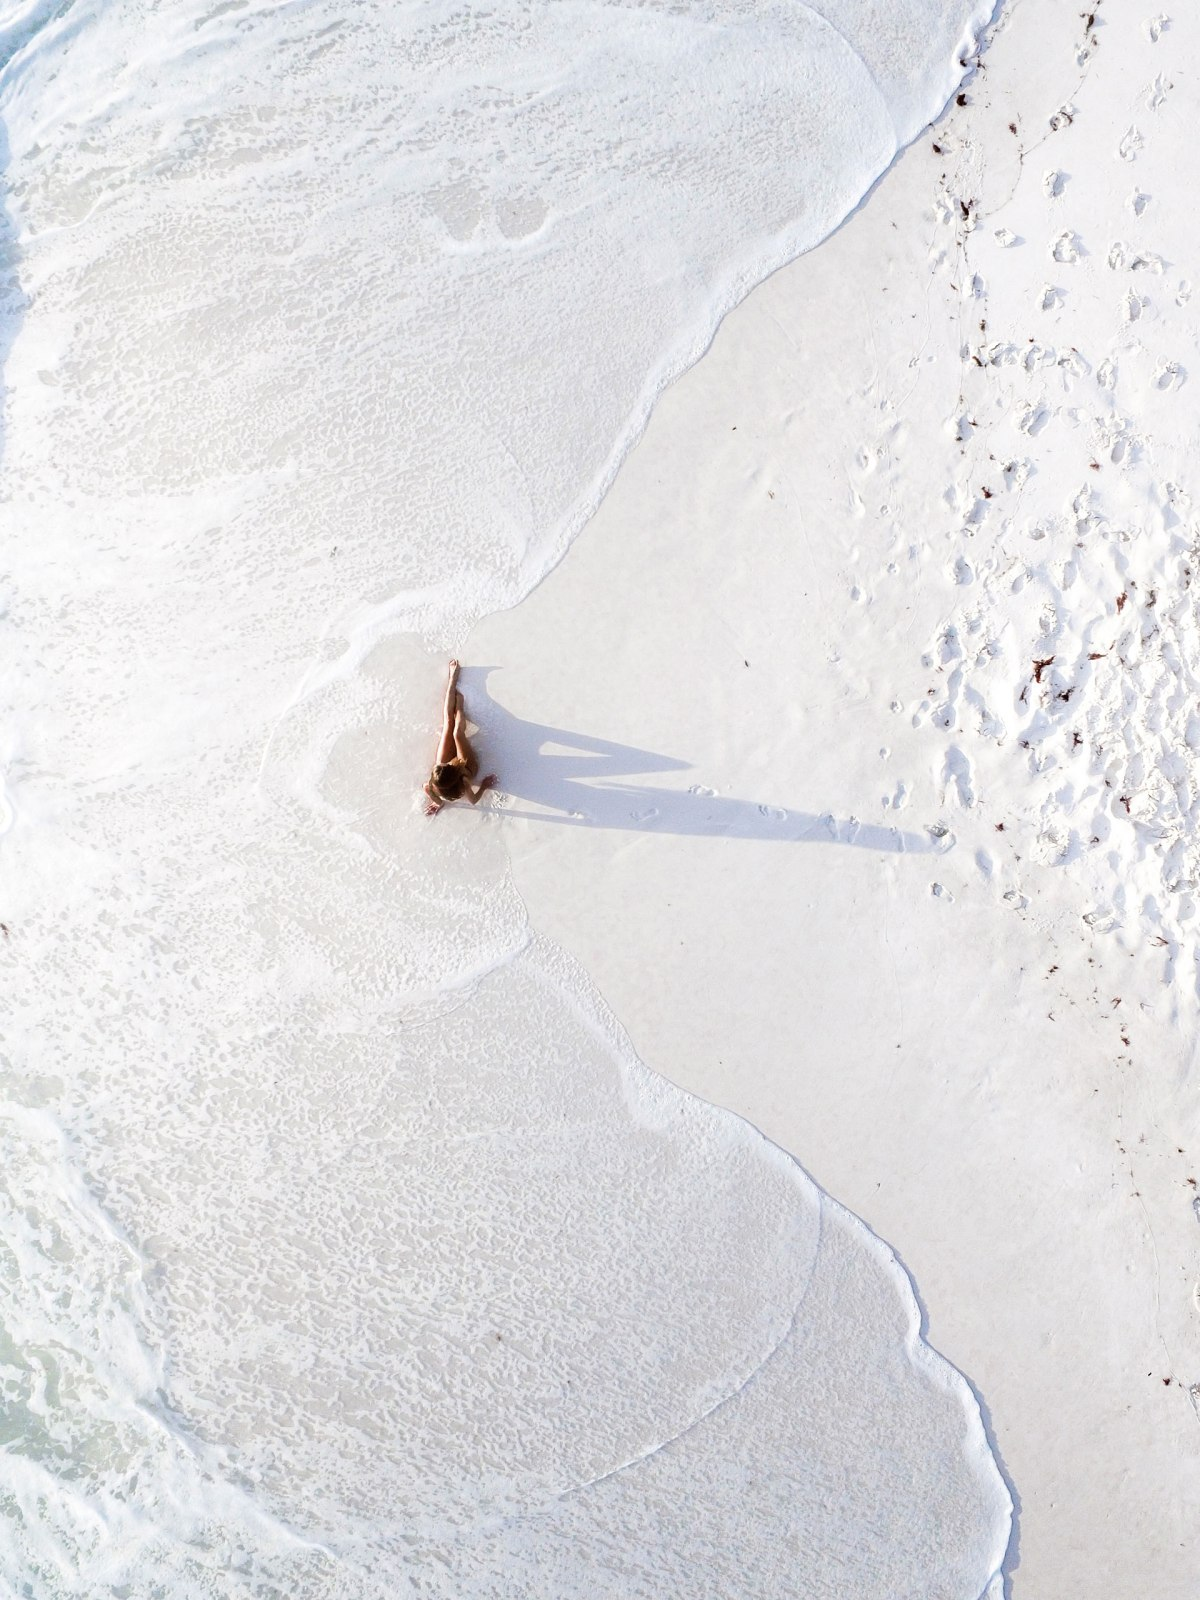 Drone Photo Of Girl On Whitest Sand In The World